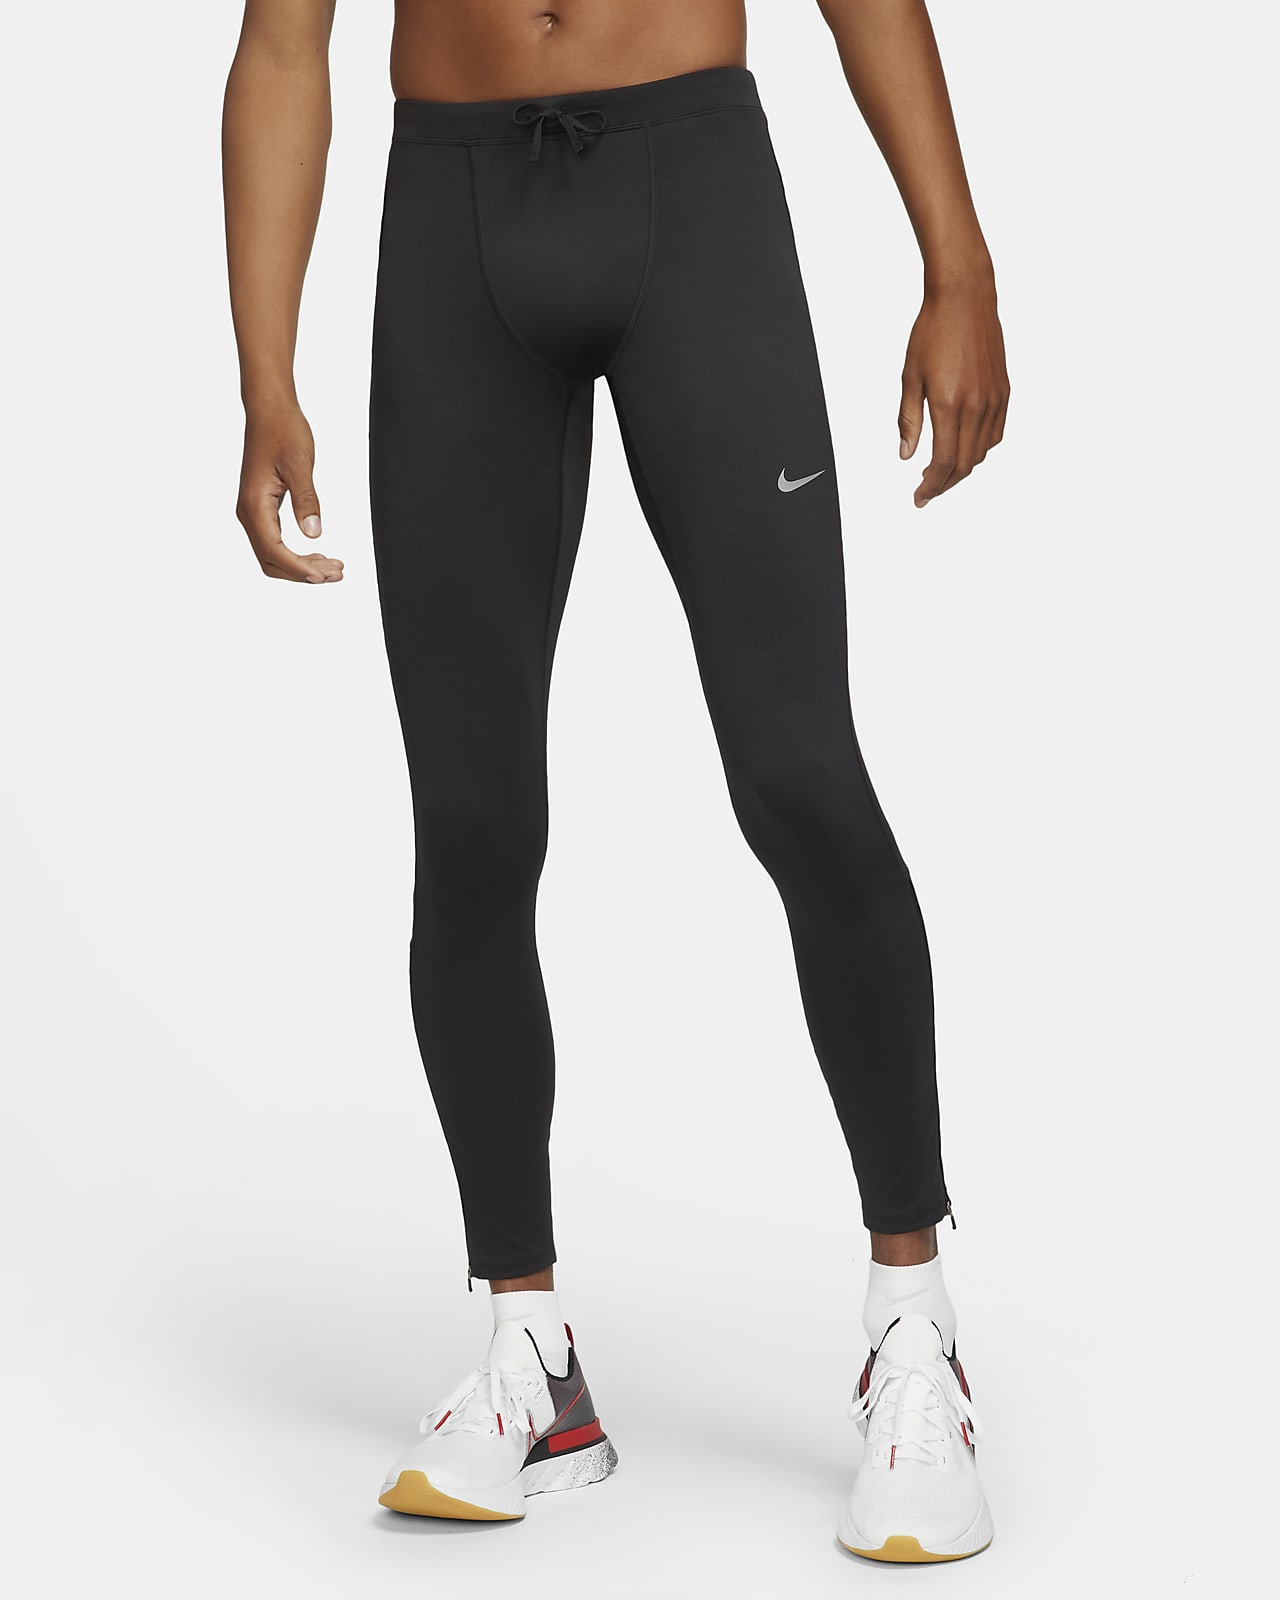 Nike Dri-FIT Challenger Men's Running Tights